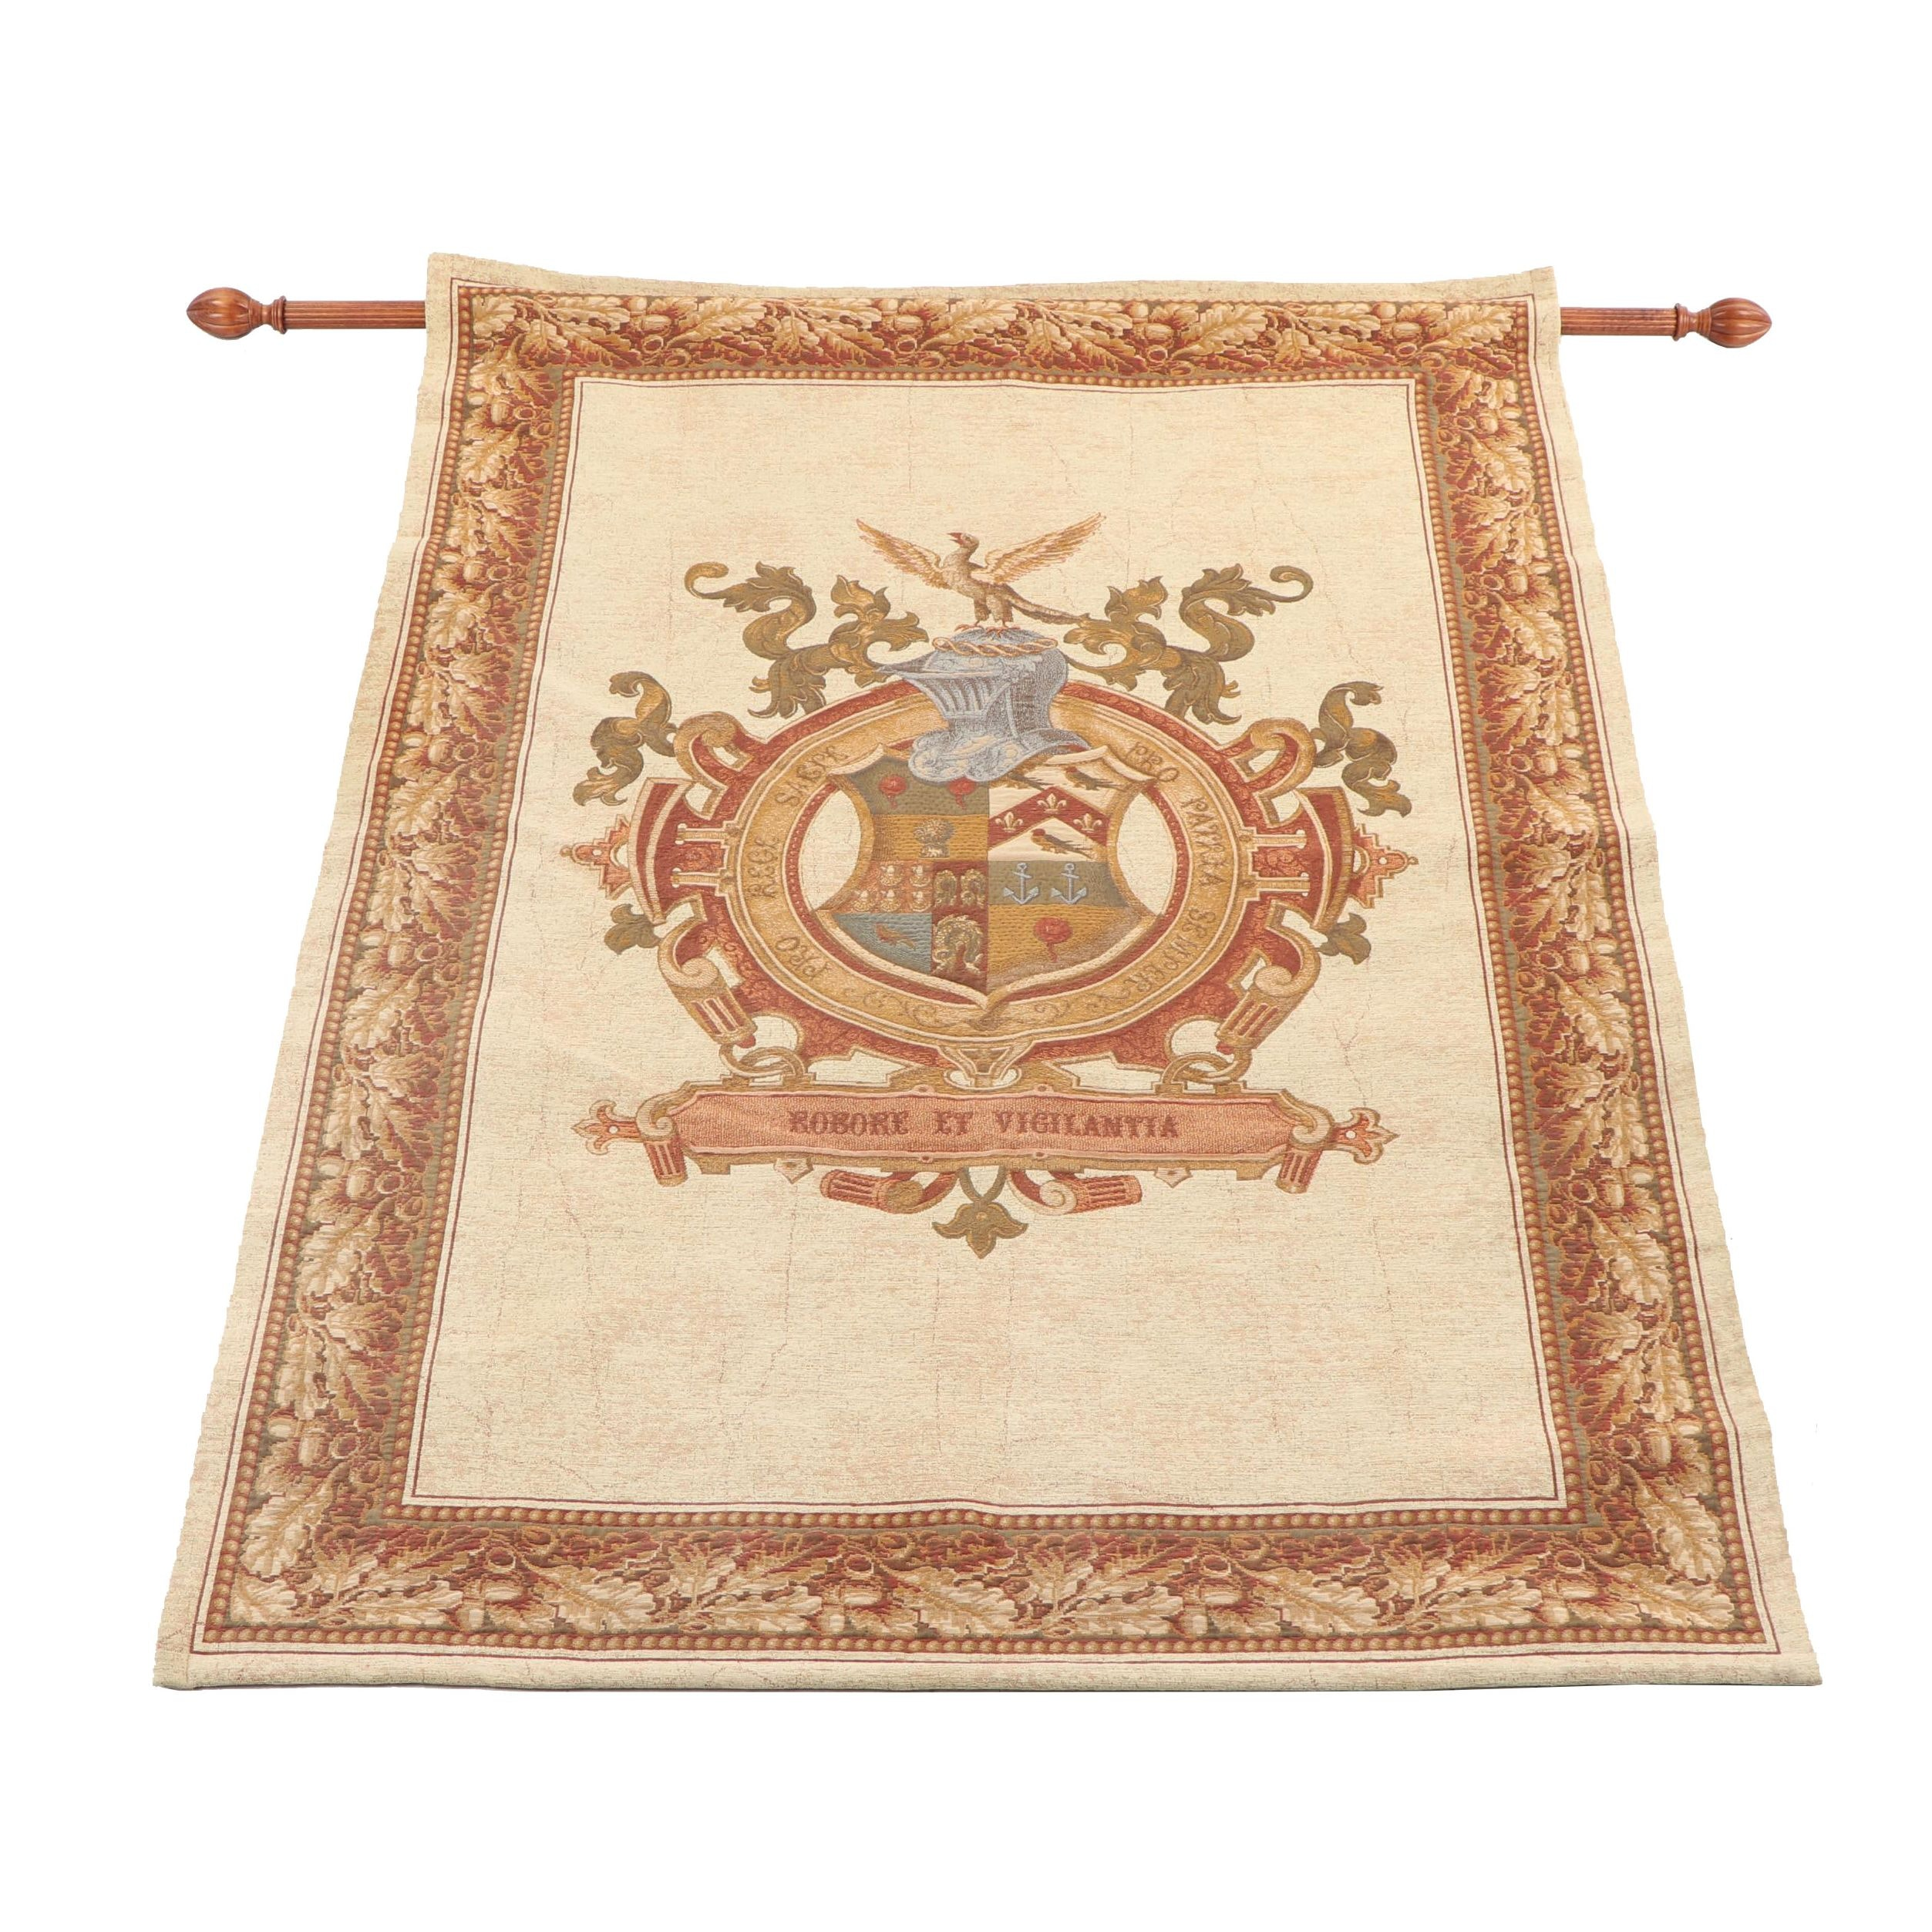 "Beldeco Collection Woven Wall Hanging of Coat of Arms ""Robore Et Vigilantia"""